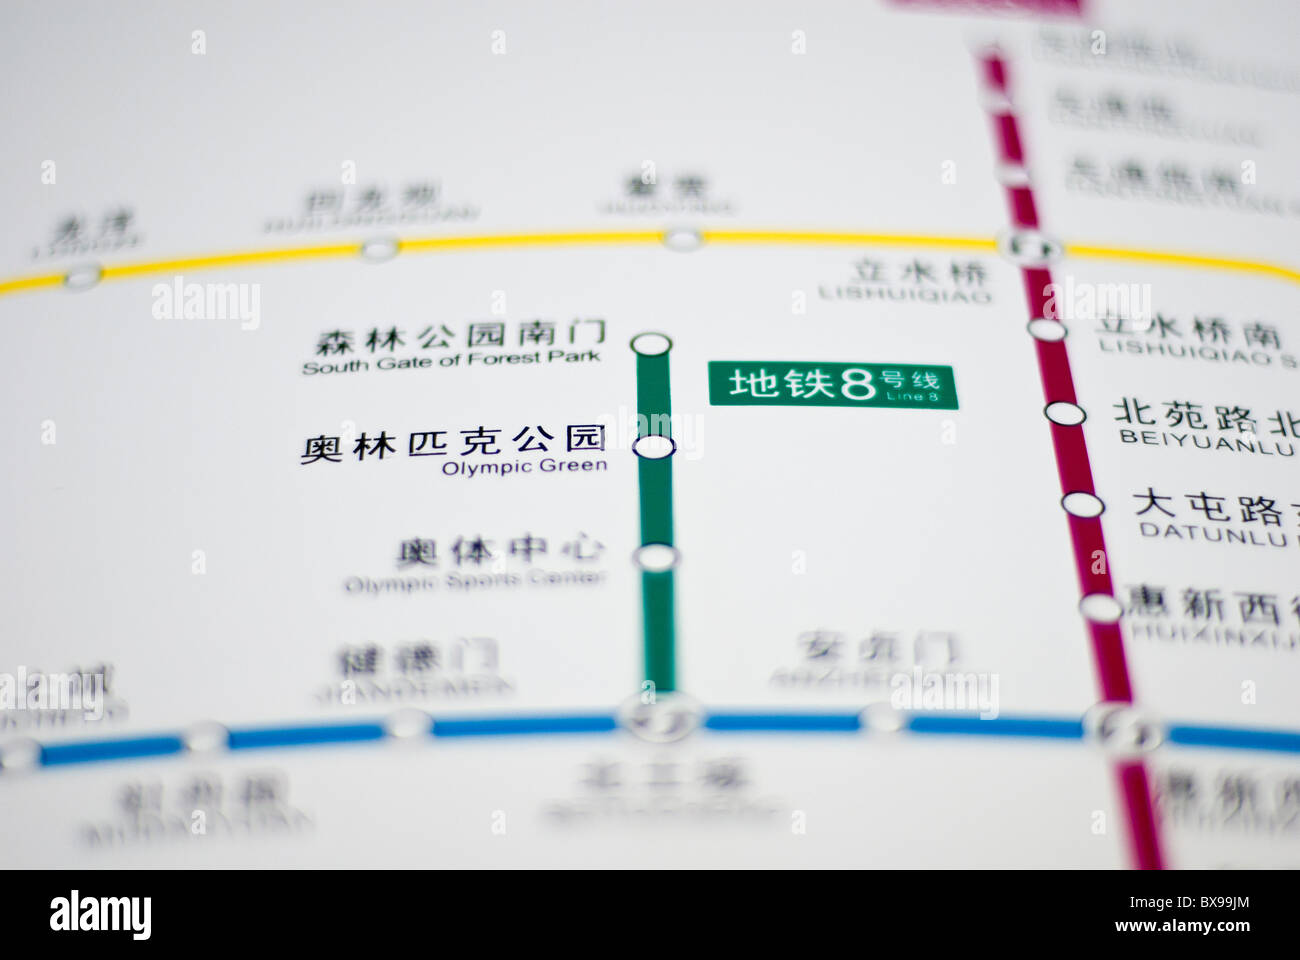 Beijing Subway Map Search.Detail Of Beijing Subway System S Map With The Olympic Green Station